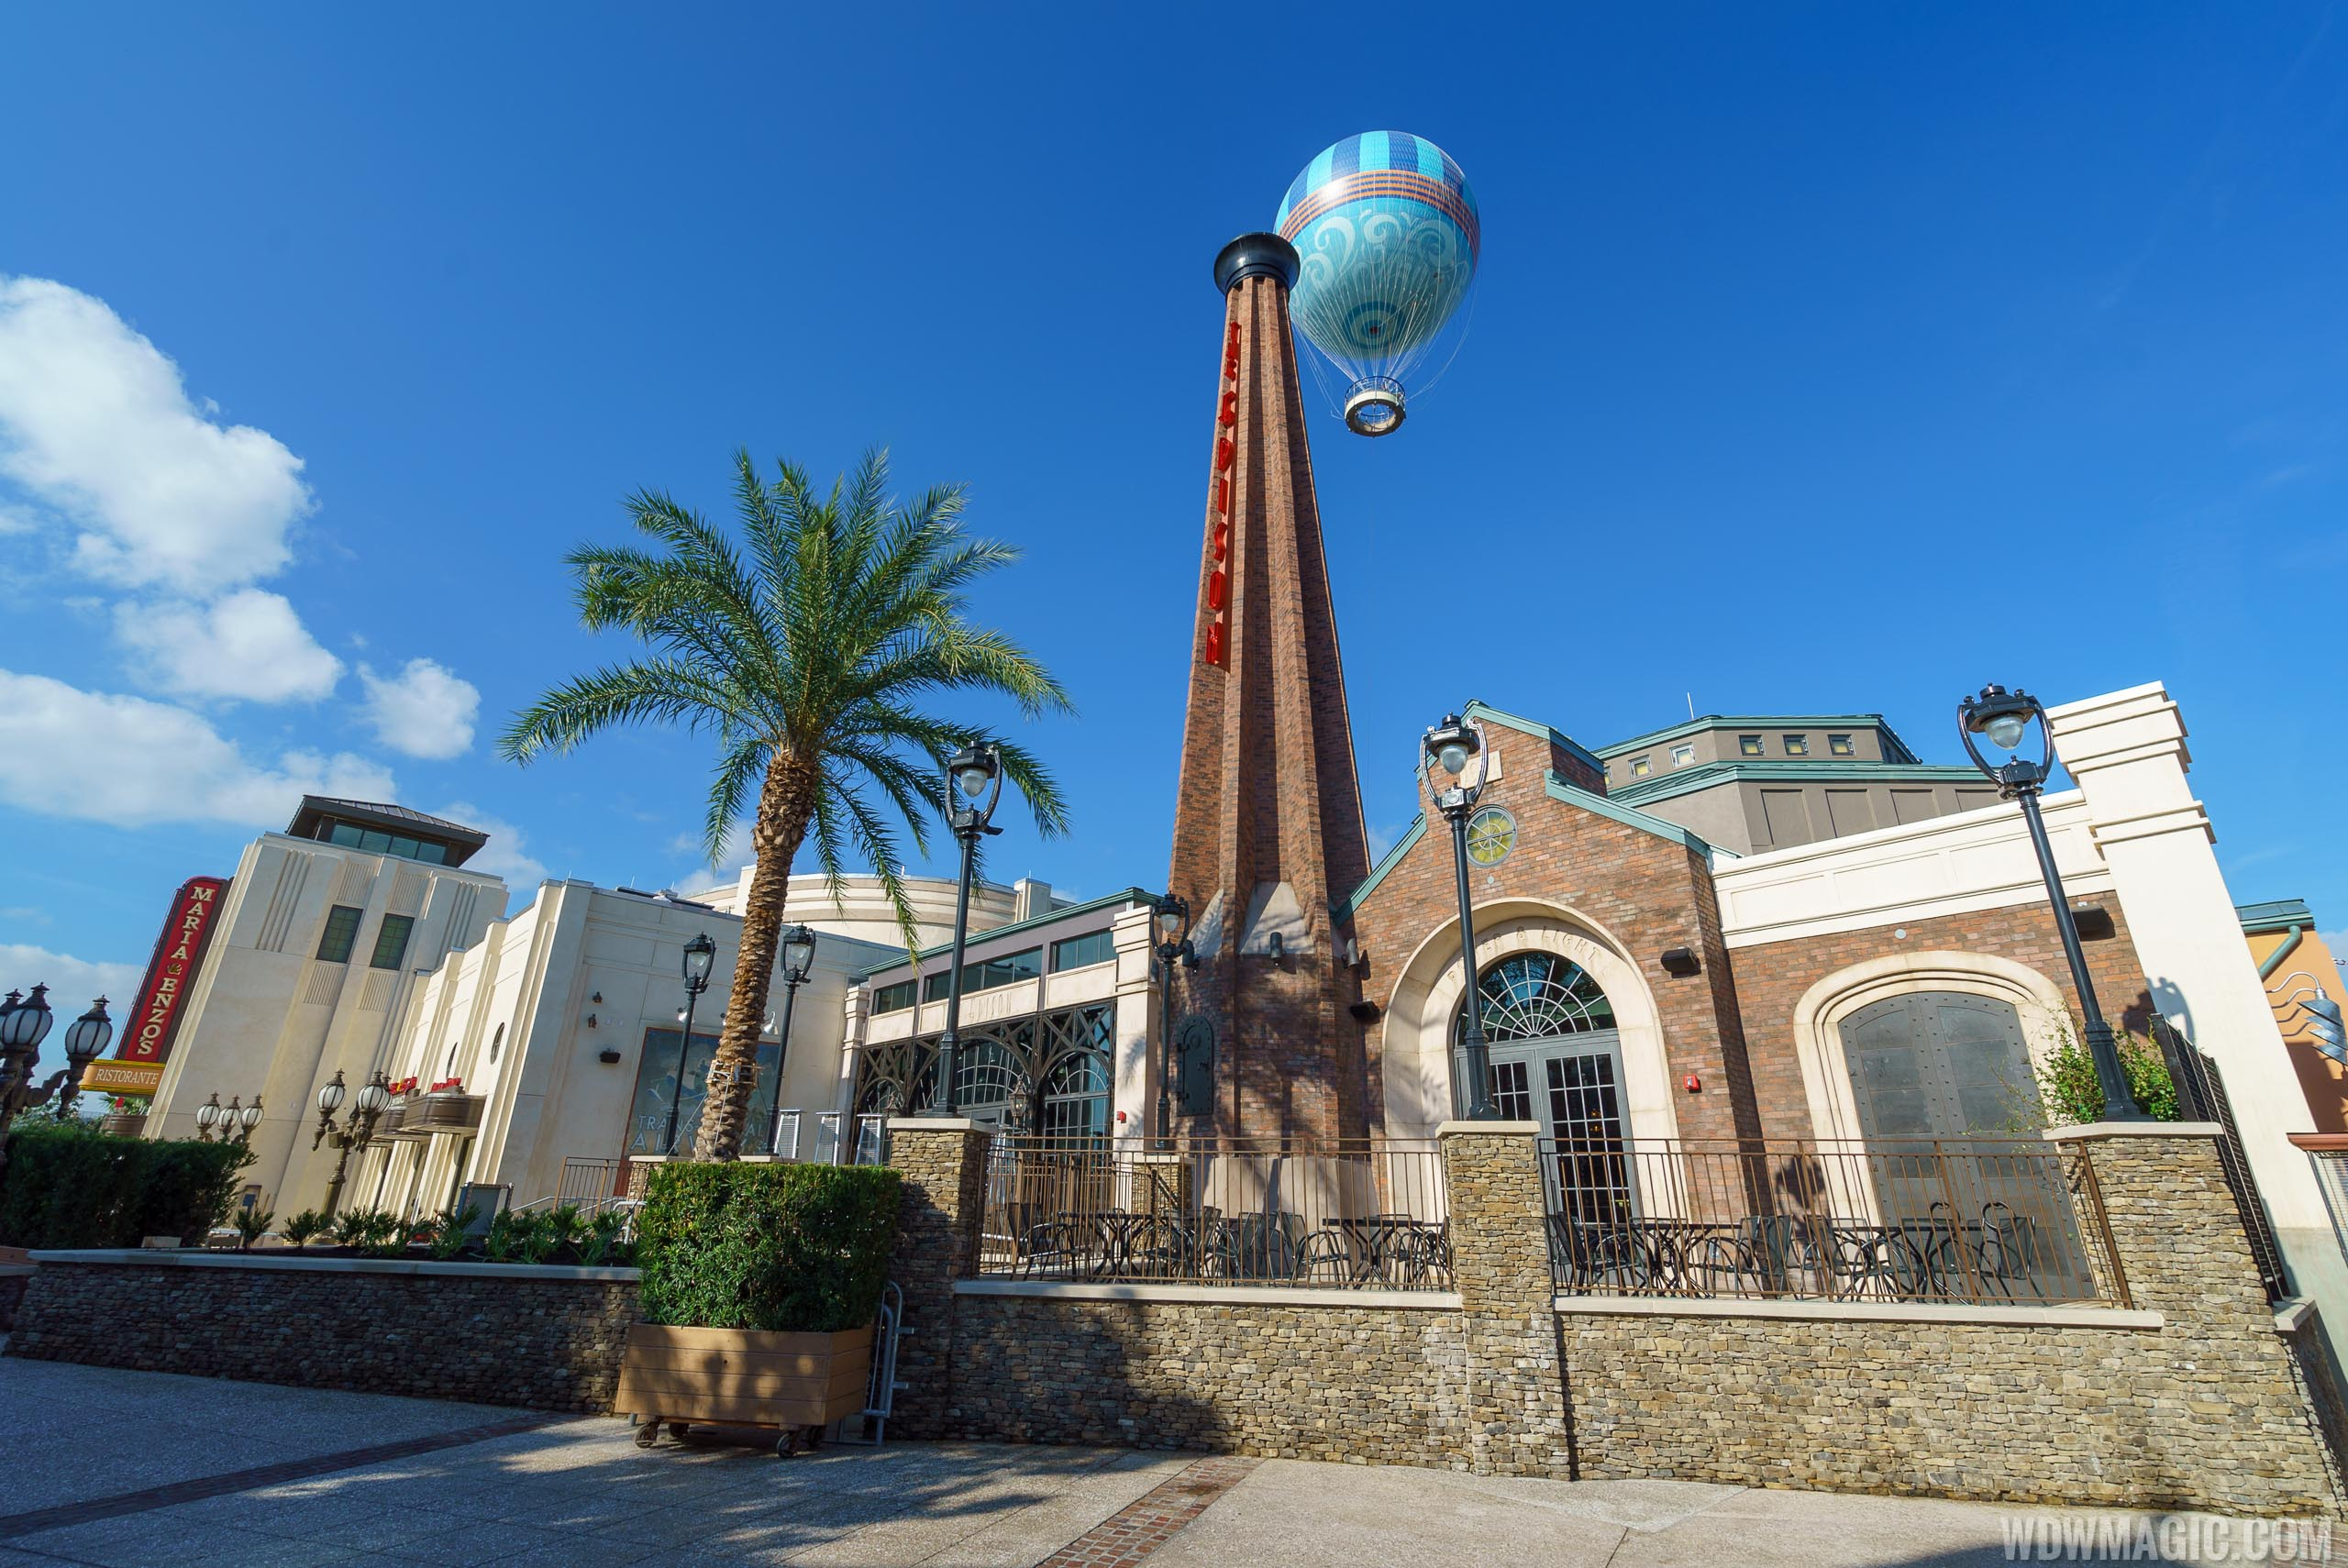 The Edison opens soon at Disney Springs